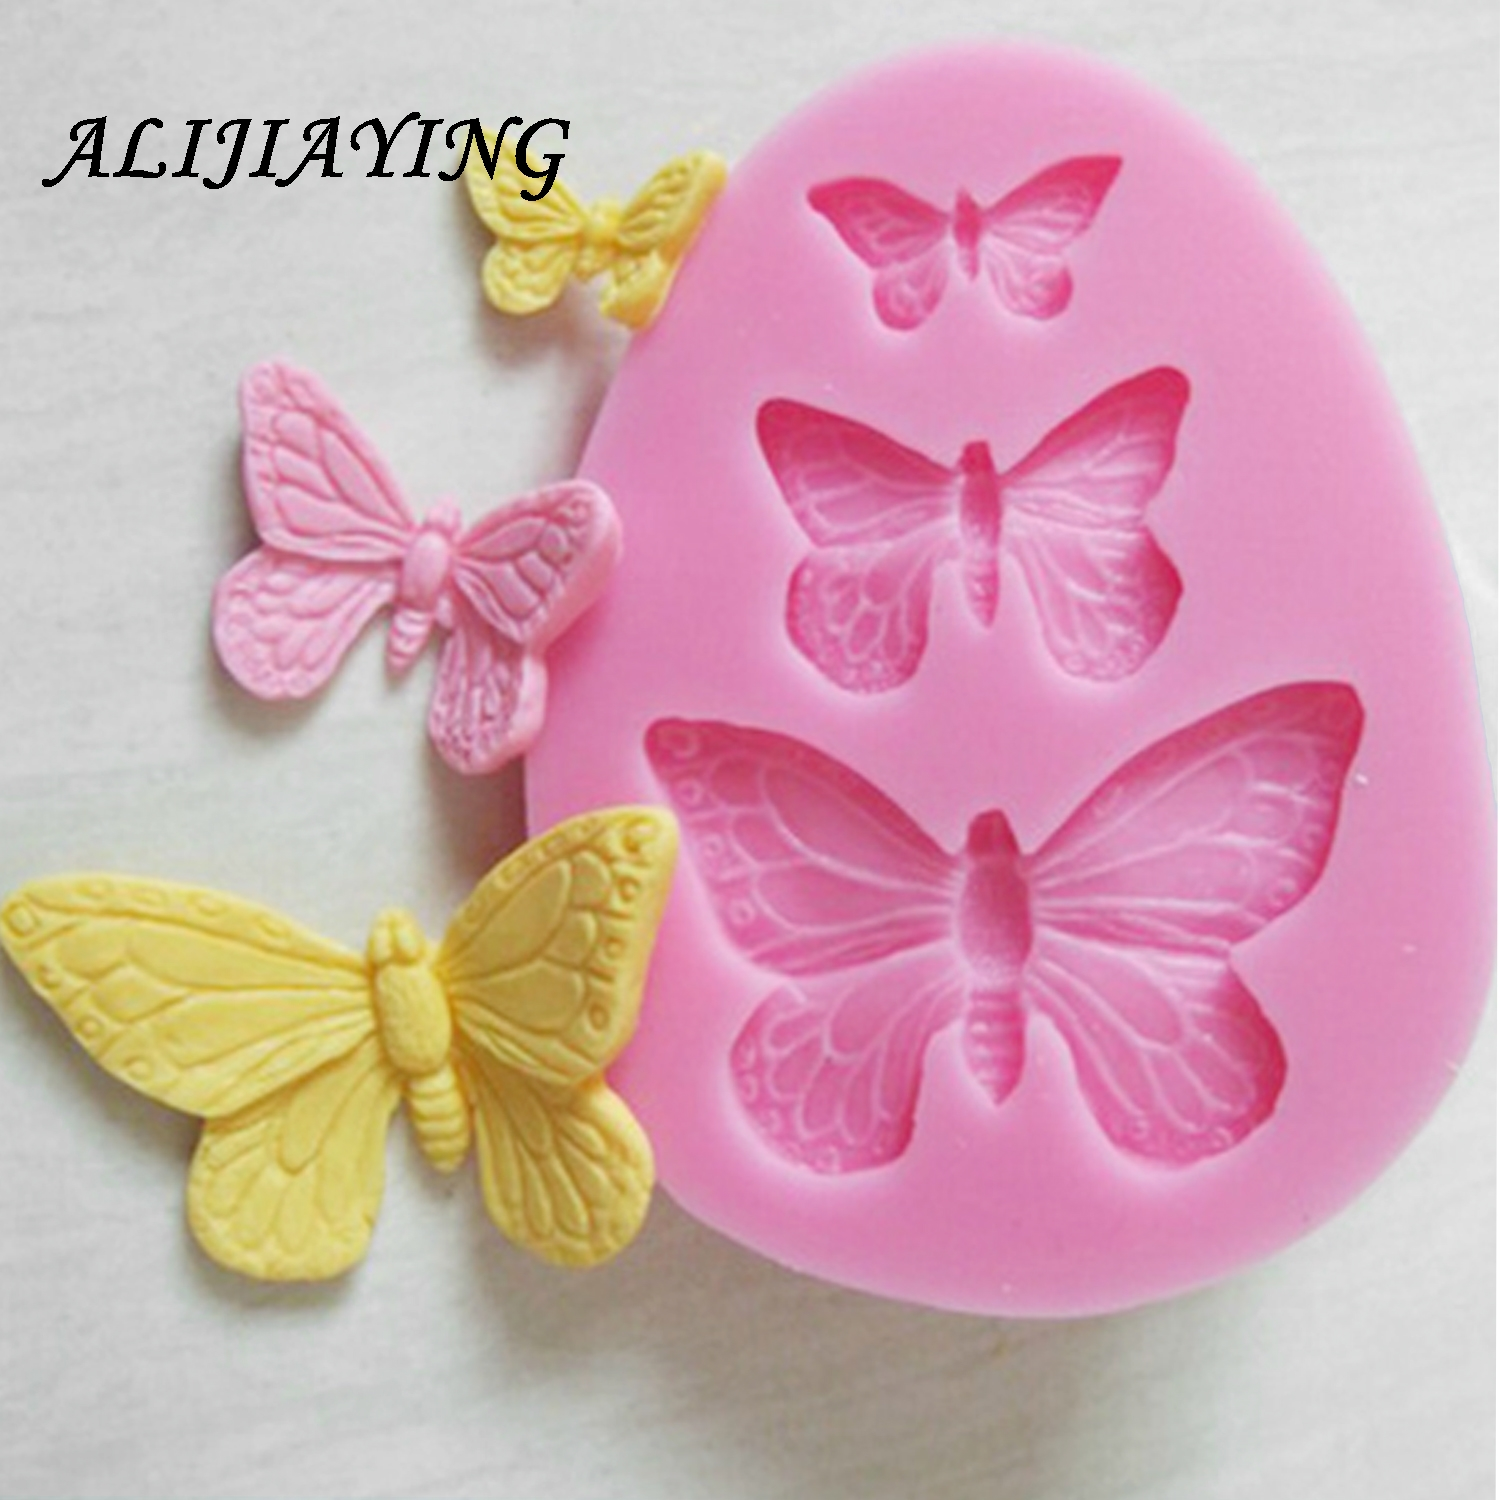 ALIJIAYING 1Pcs Sugarcraft Butterfly Silicone molds fondant